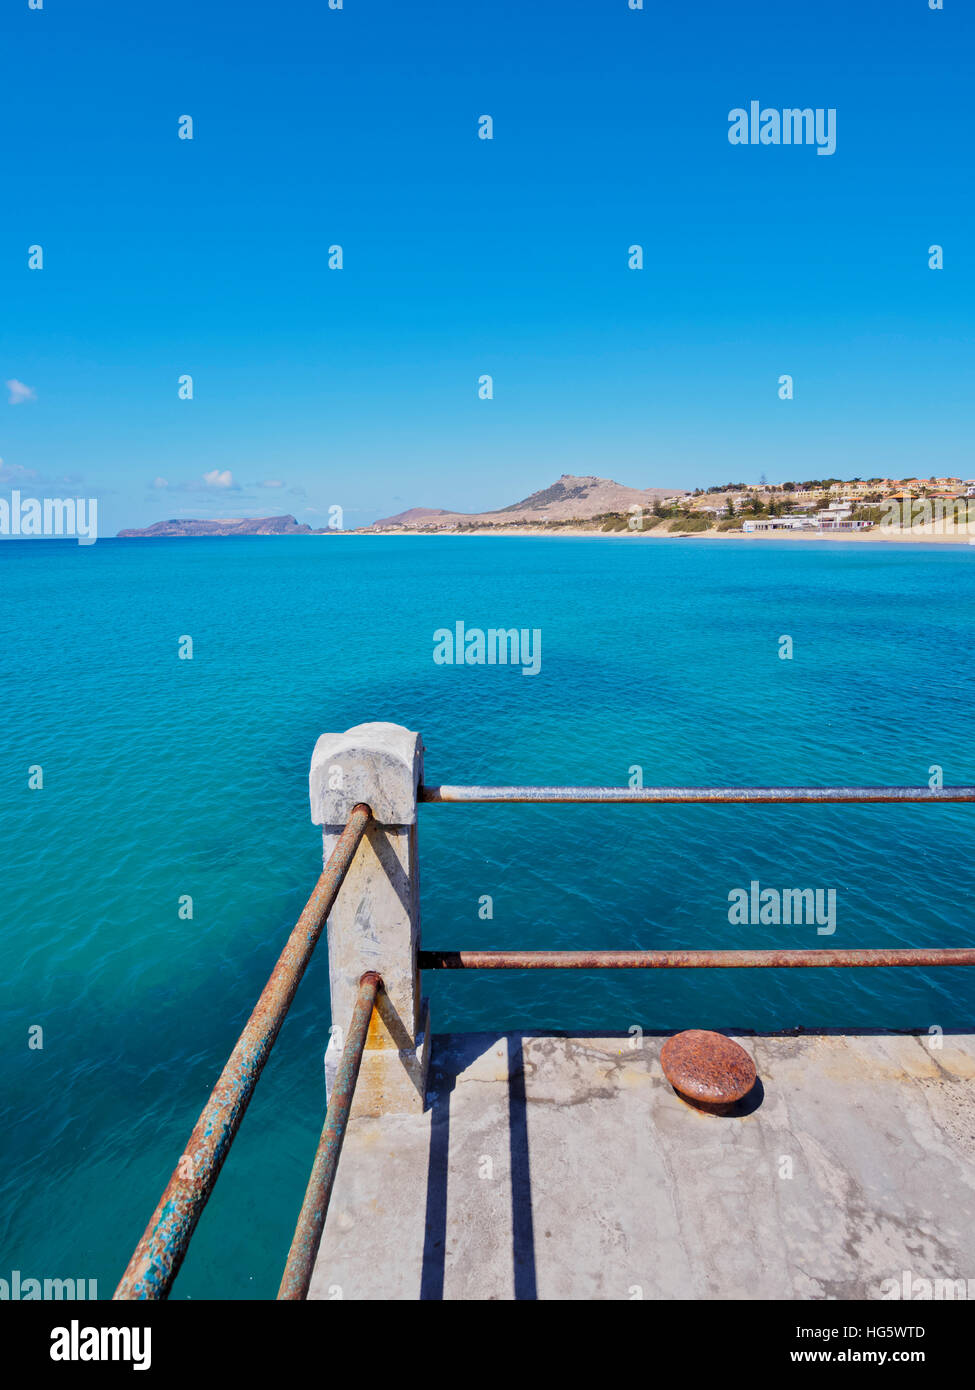 Portugal, Madeira Islands, Porto Santo, Vila Baleira, View of the pier. - Stock Image